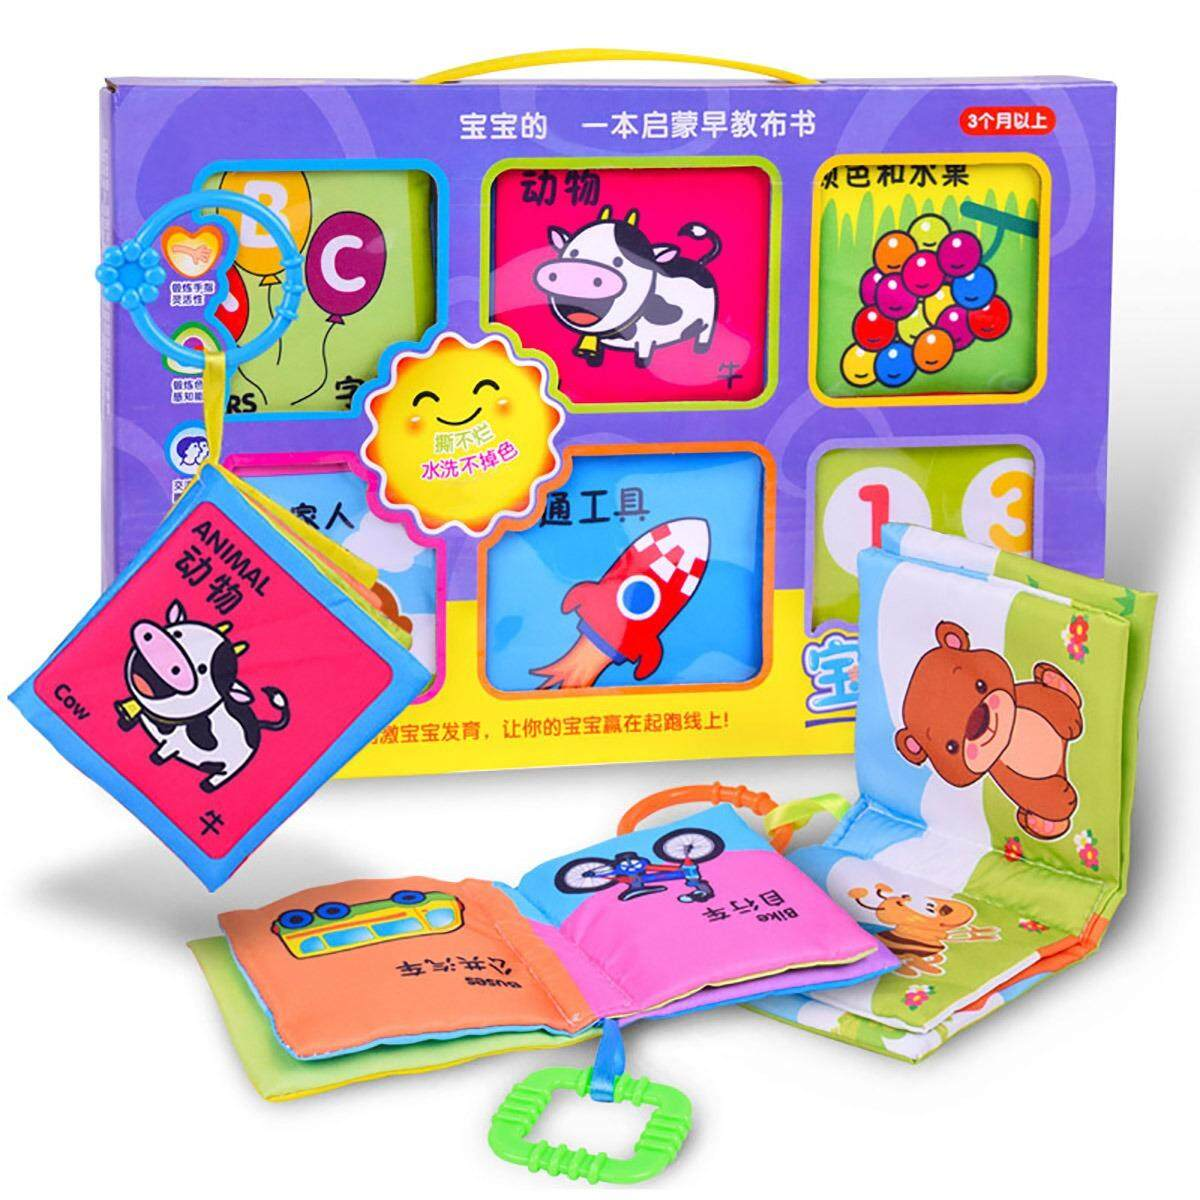 Baby Toy Soft Cloth Books Rustle Sound Infant Educational Toy Newborn Crib Bed Baby Toys kind for Random - intl